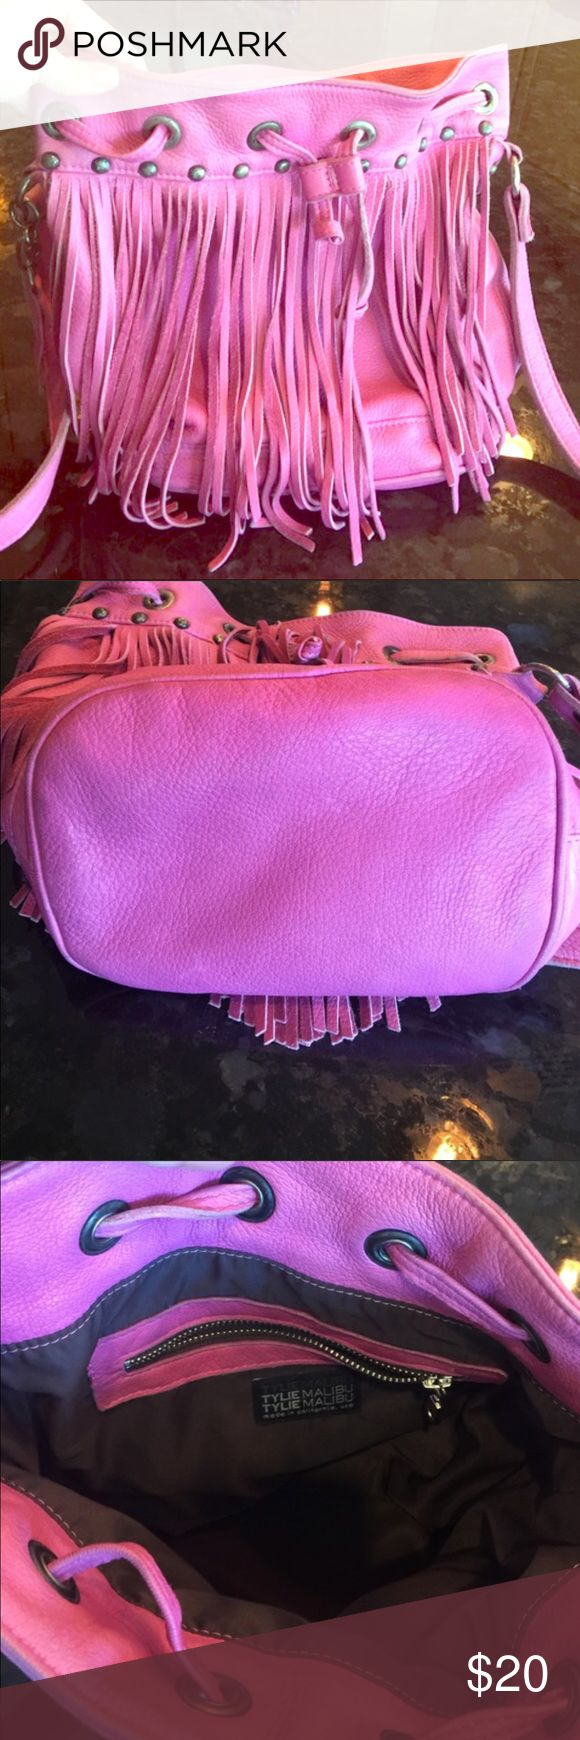 Pink leather fringe bucket purse Tylie Malibu brand. This awesome boho purse is a fun hot pink leather drawstring bucket style lined in fringe and studs. Adjustable long handle let's you wear it over the shoulder or as a crossbody. Condition is pre-loved but good, there are 2 minor marks but the fringe covers them(see last 2 photos)and the interior is very clean. The strap shows some wear but doesn't look bad. Hence the great price discount for this brand name bag.Overall A fun boho purse…